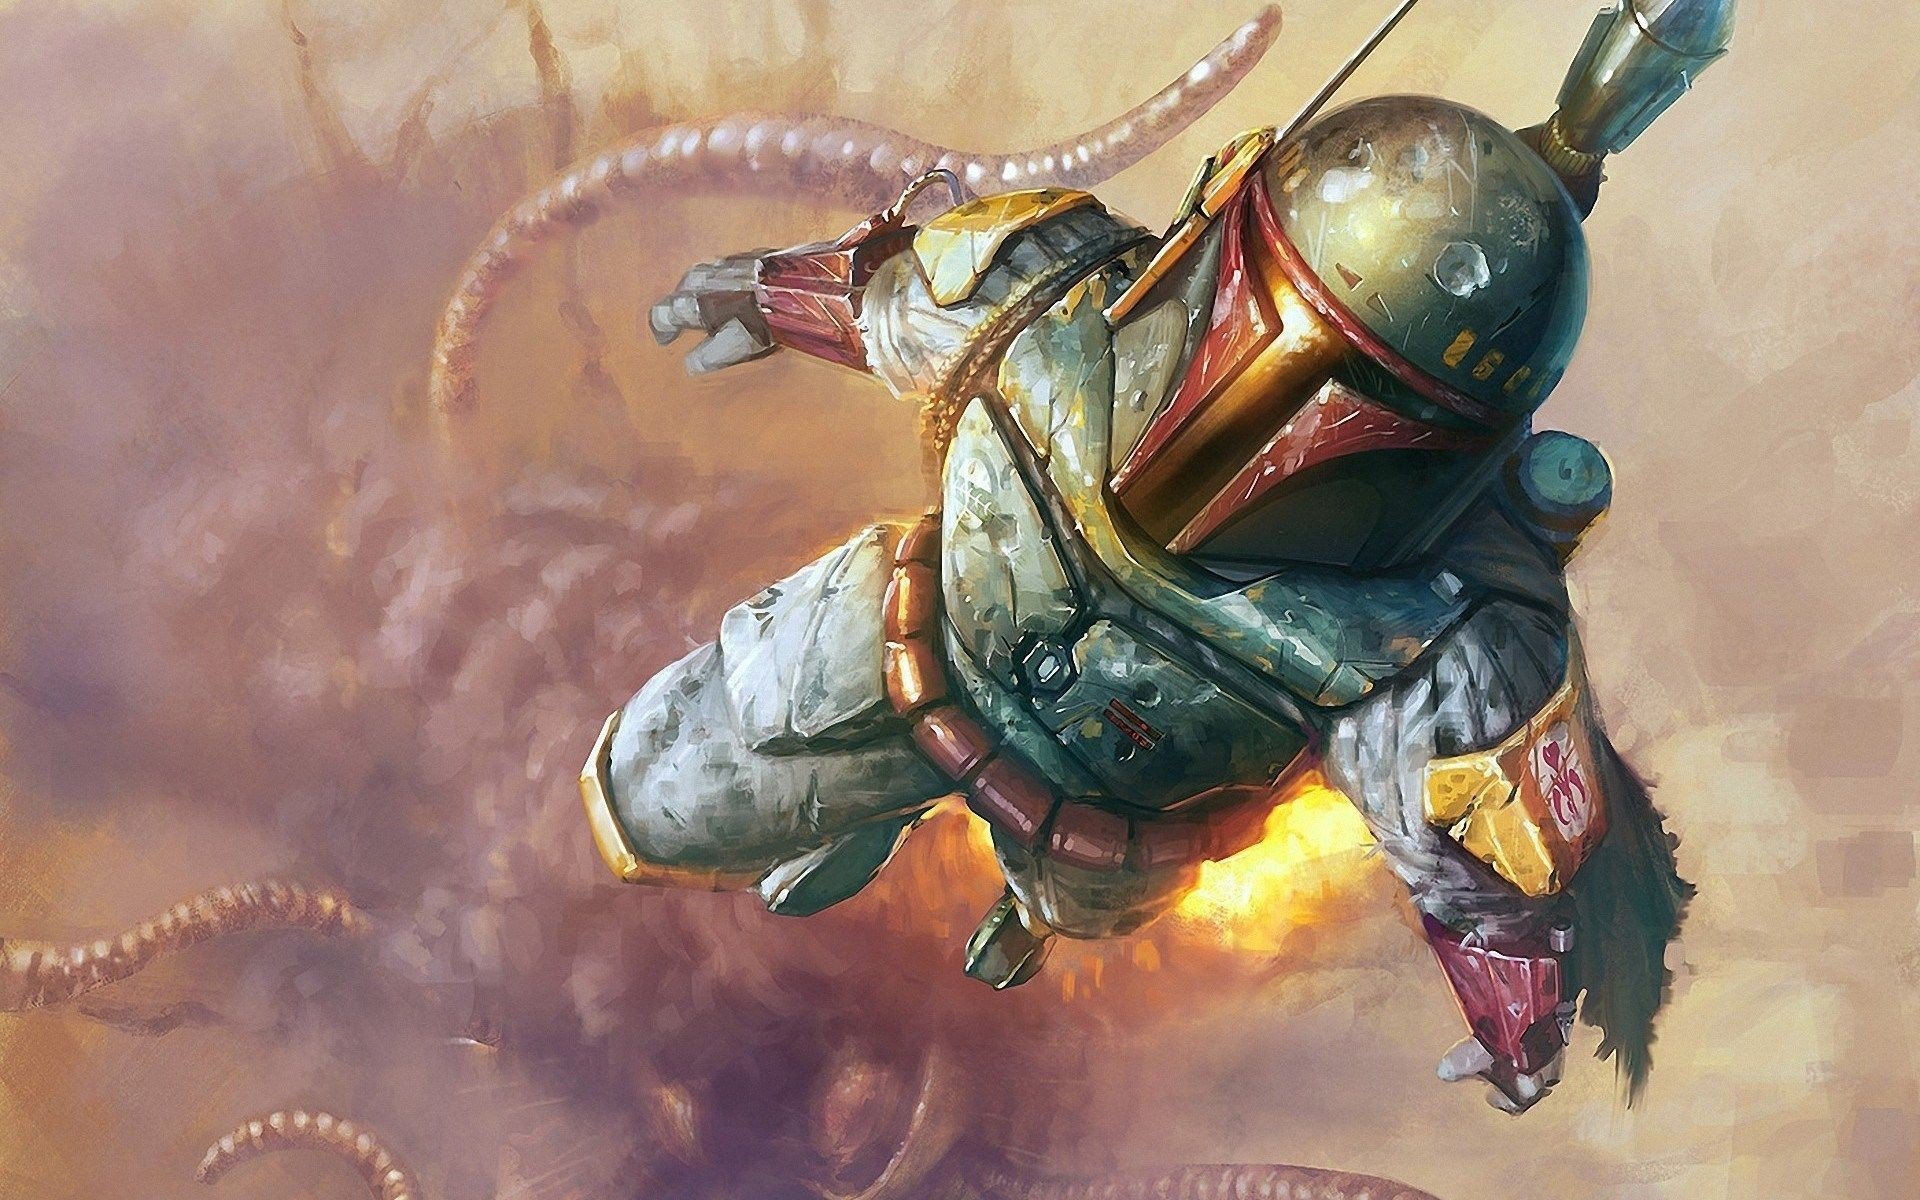 Star Wars Boba Fett Wallpaper 1